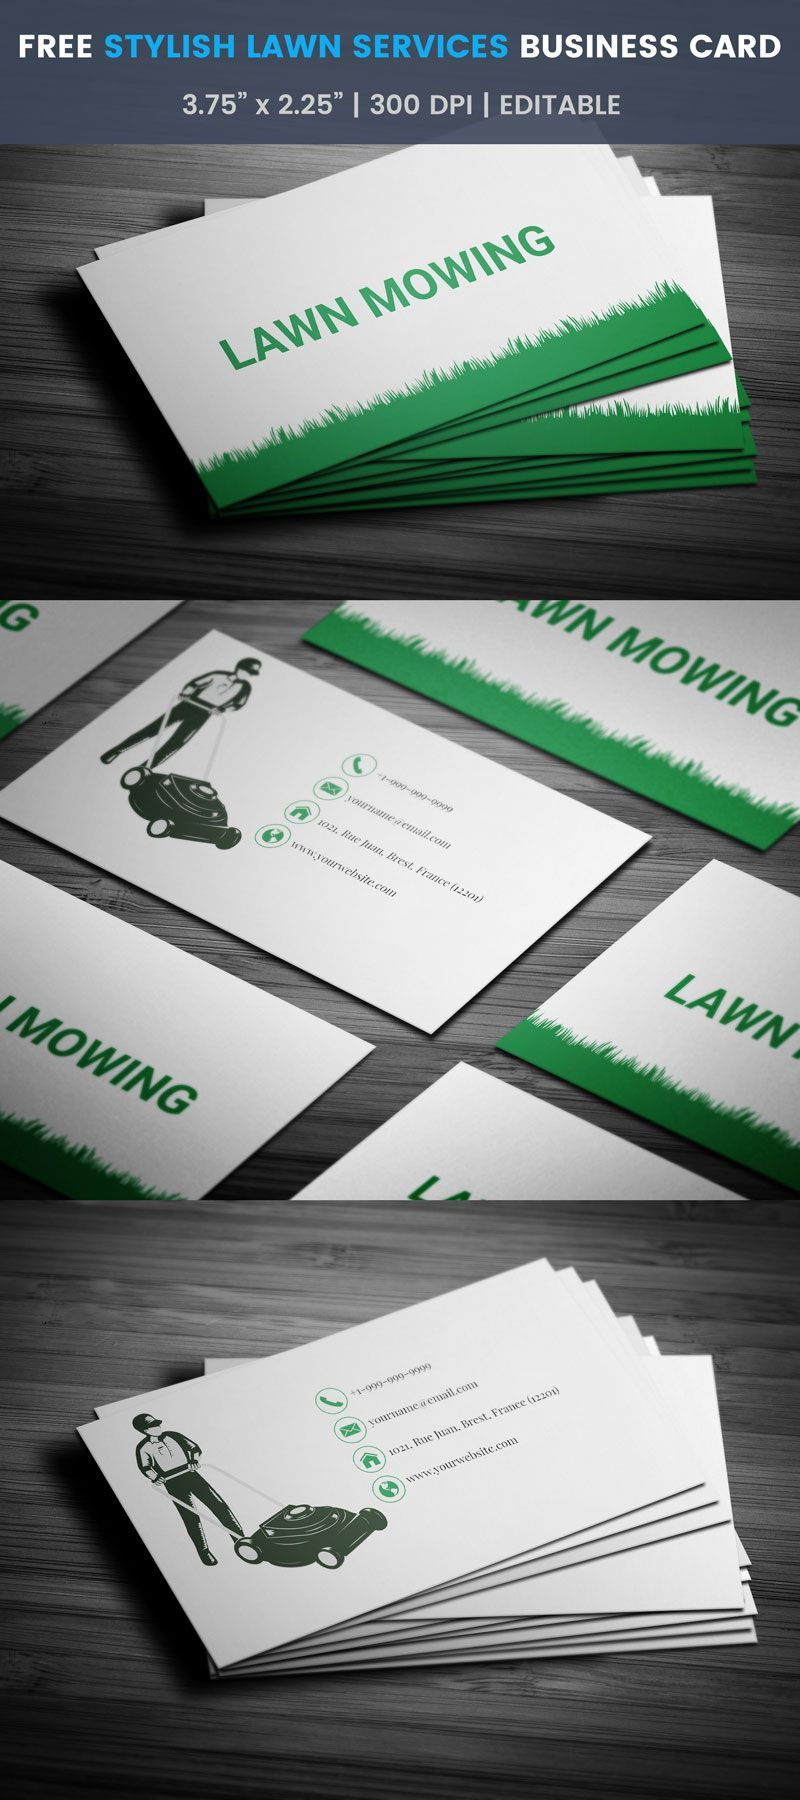 Brilliant Lawn Mowing Business Card Full Preview Lawn Sprinklers